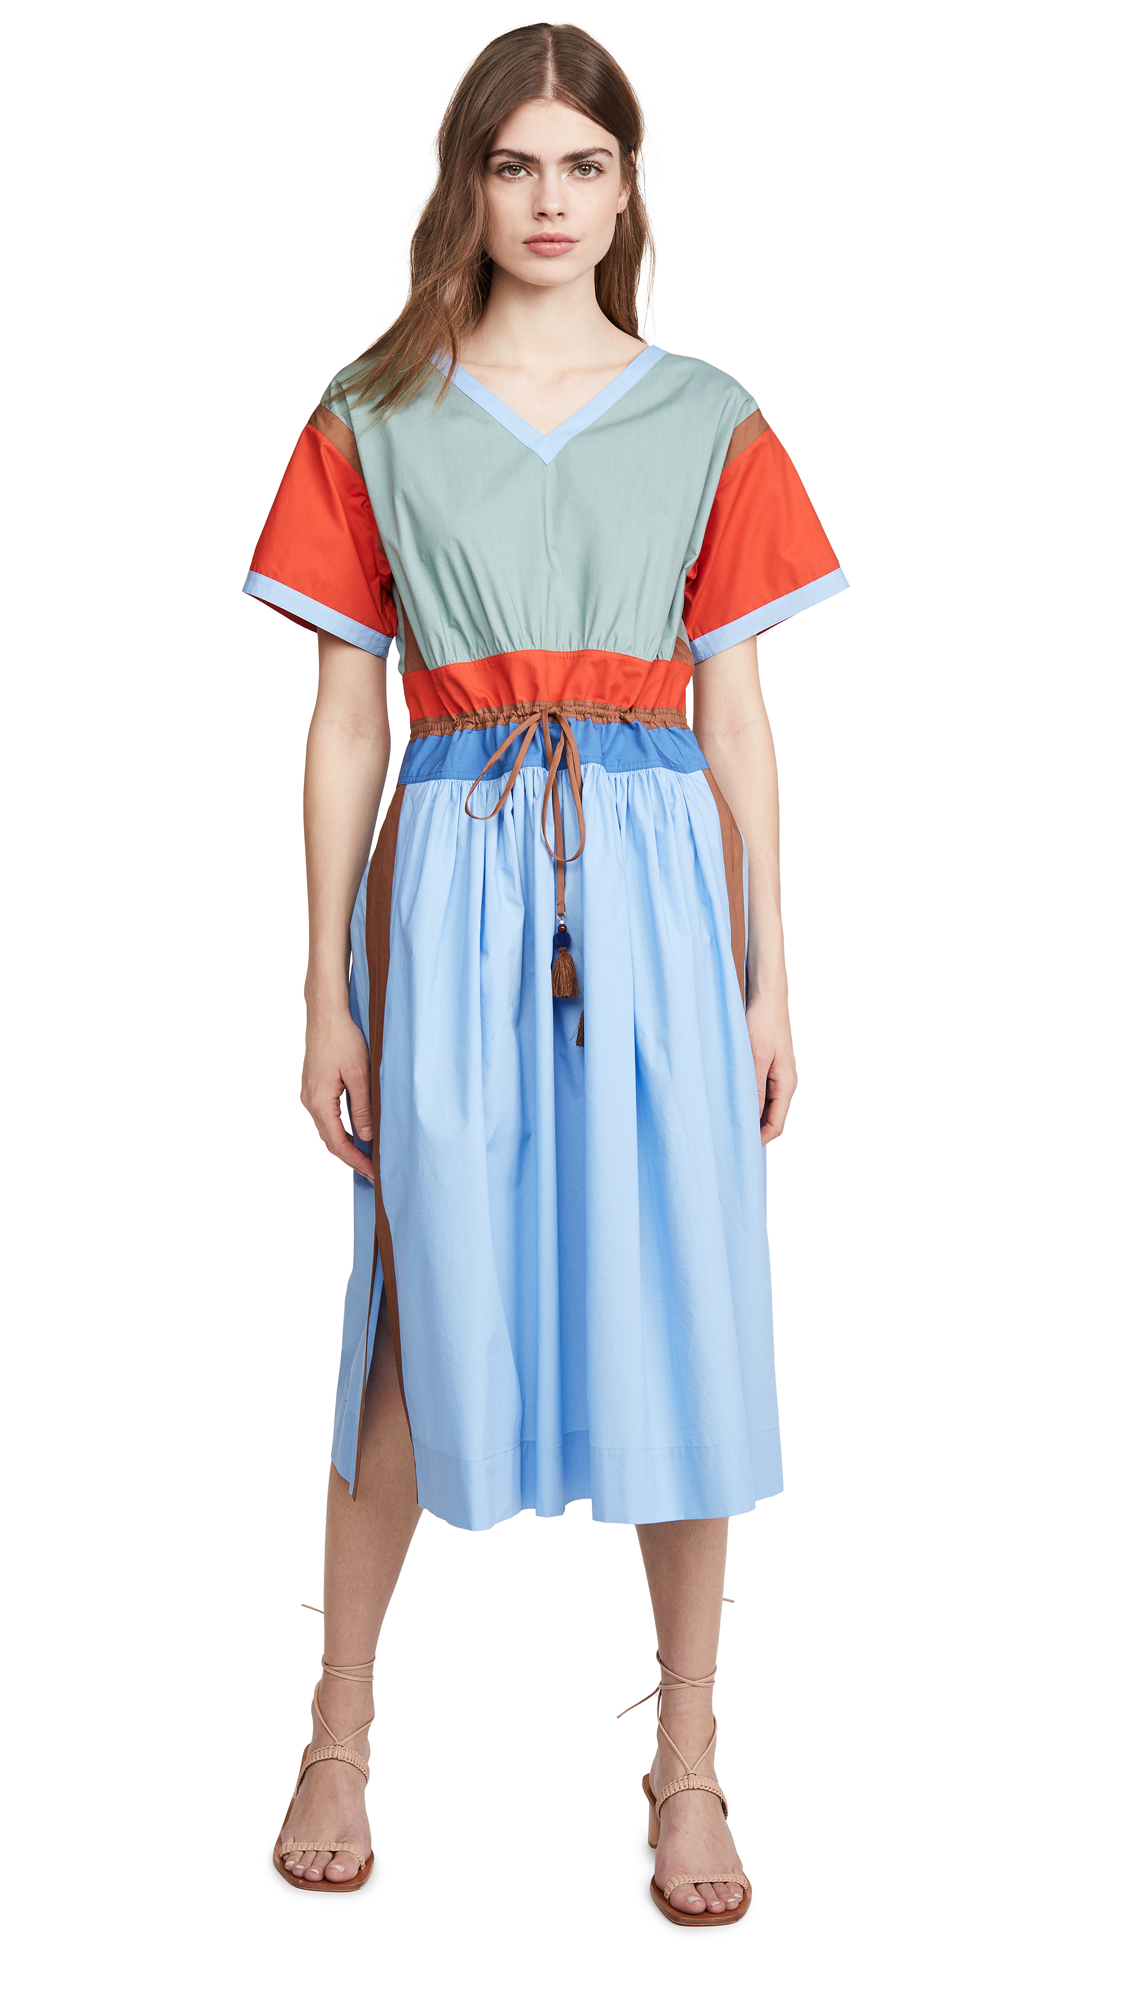 Tory Burch Colorblock Poplin Dress - 30% Off Sale